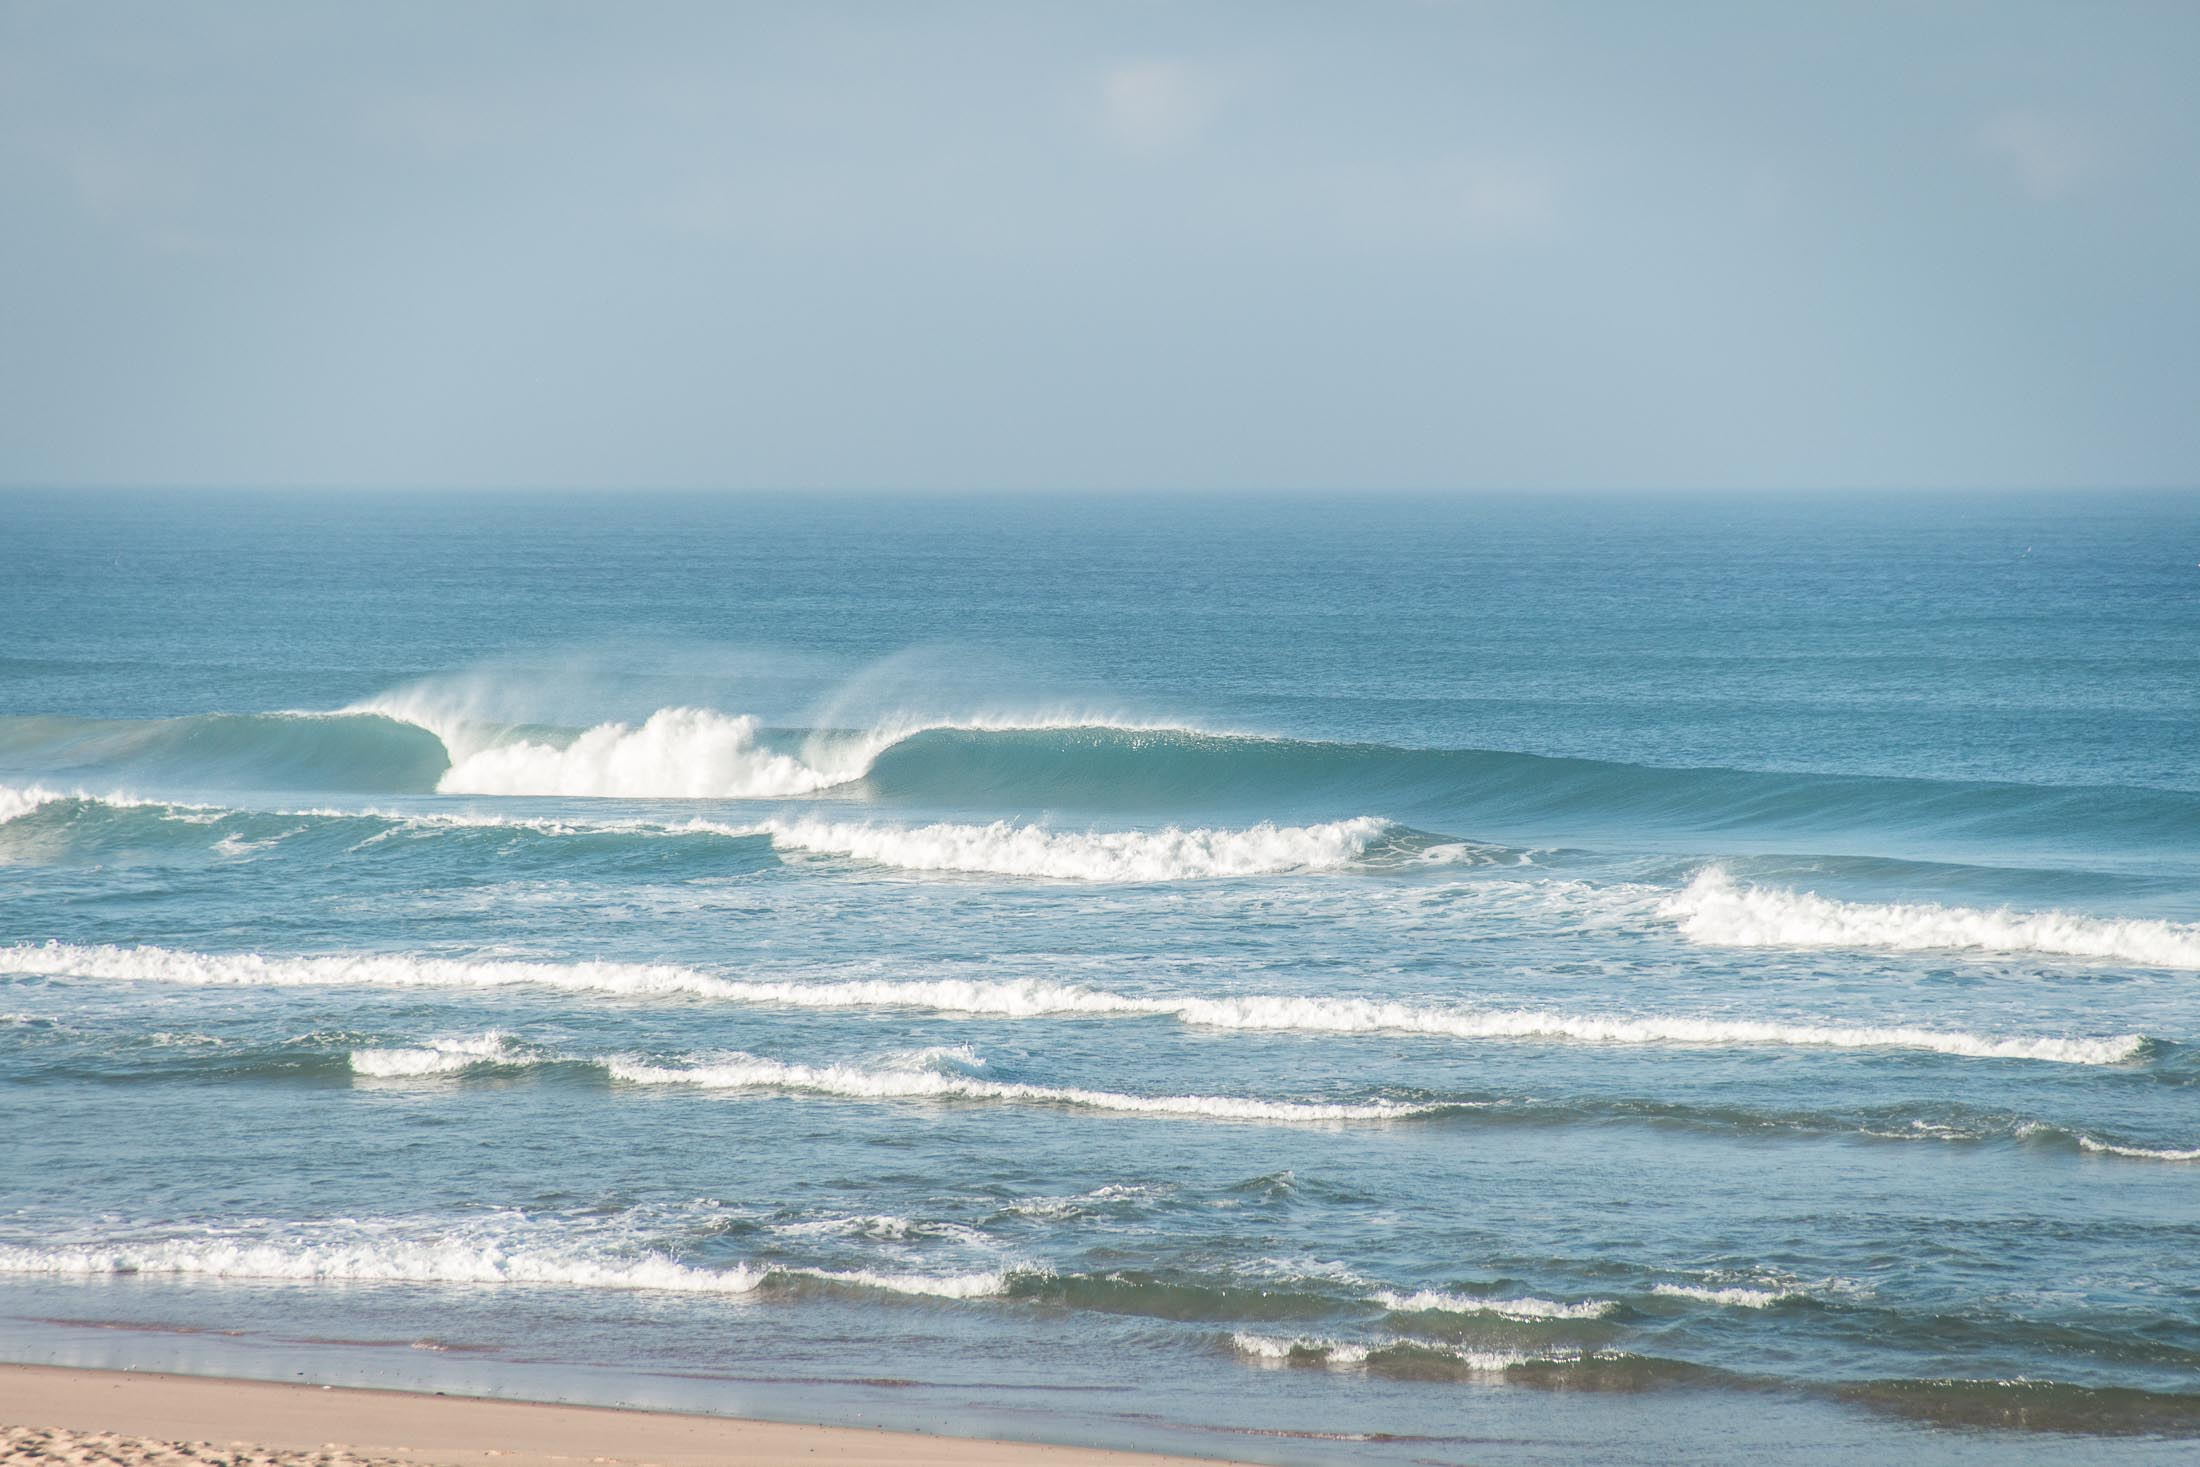 praia do areal - morning session